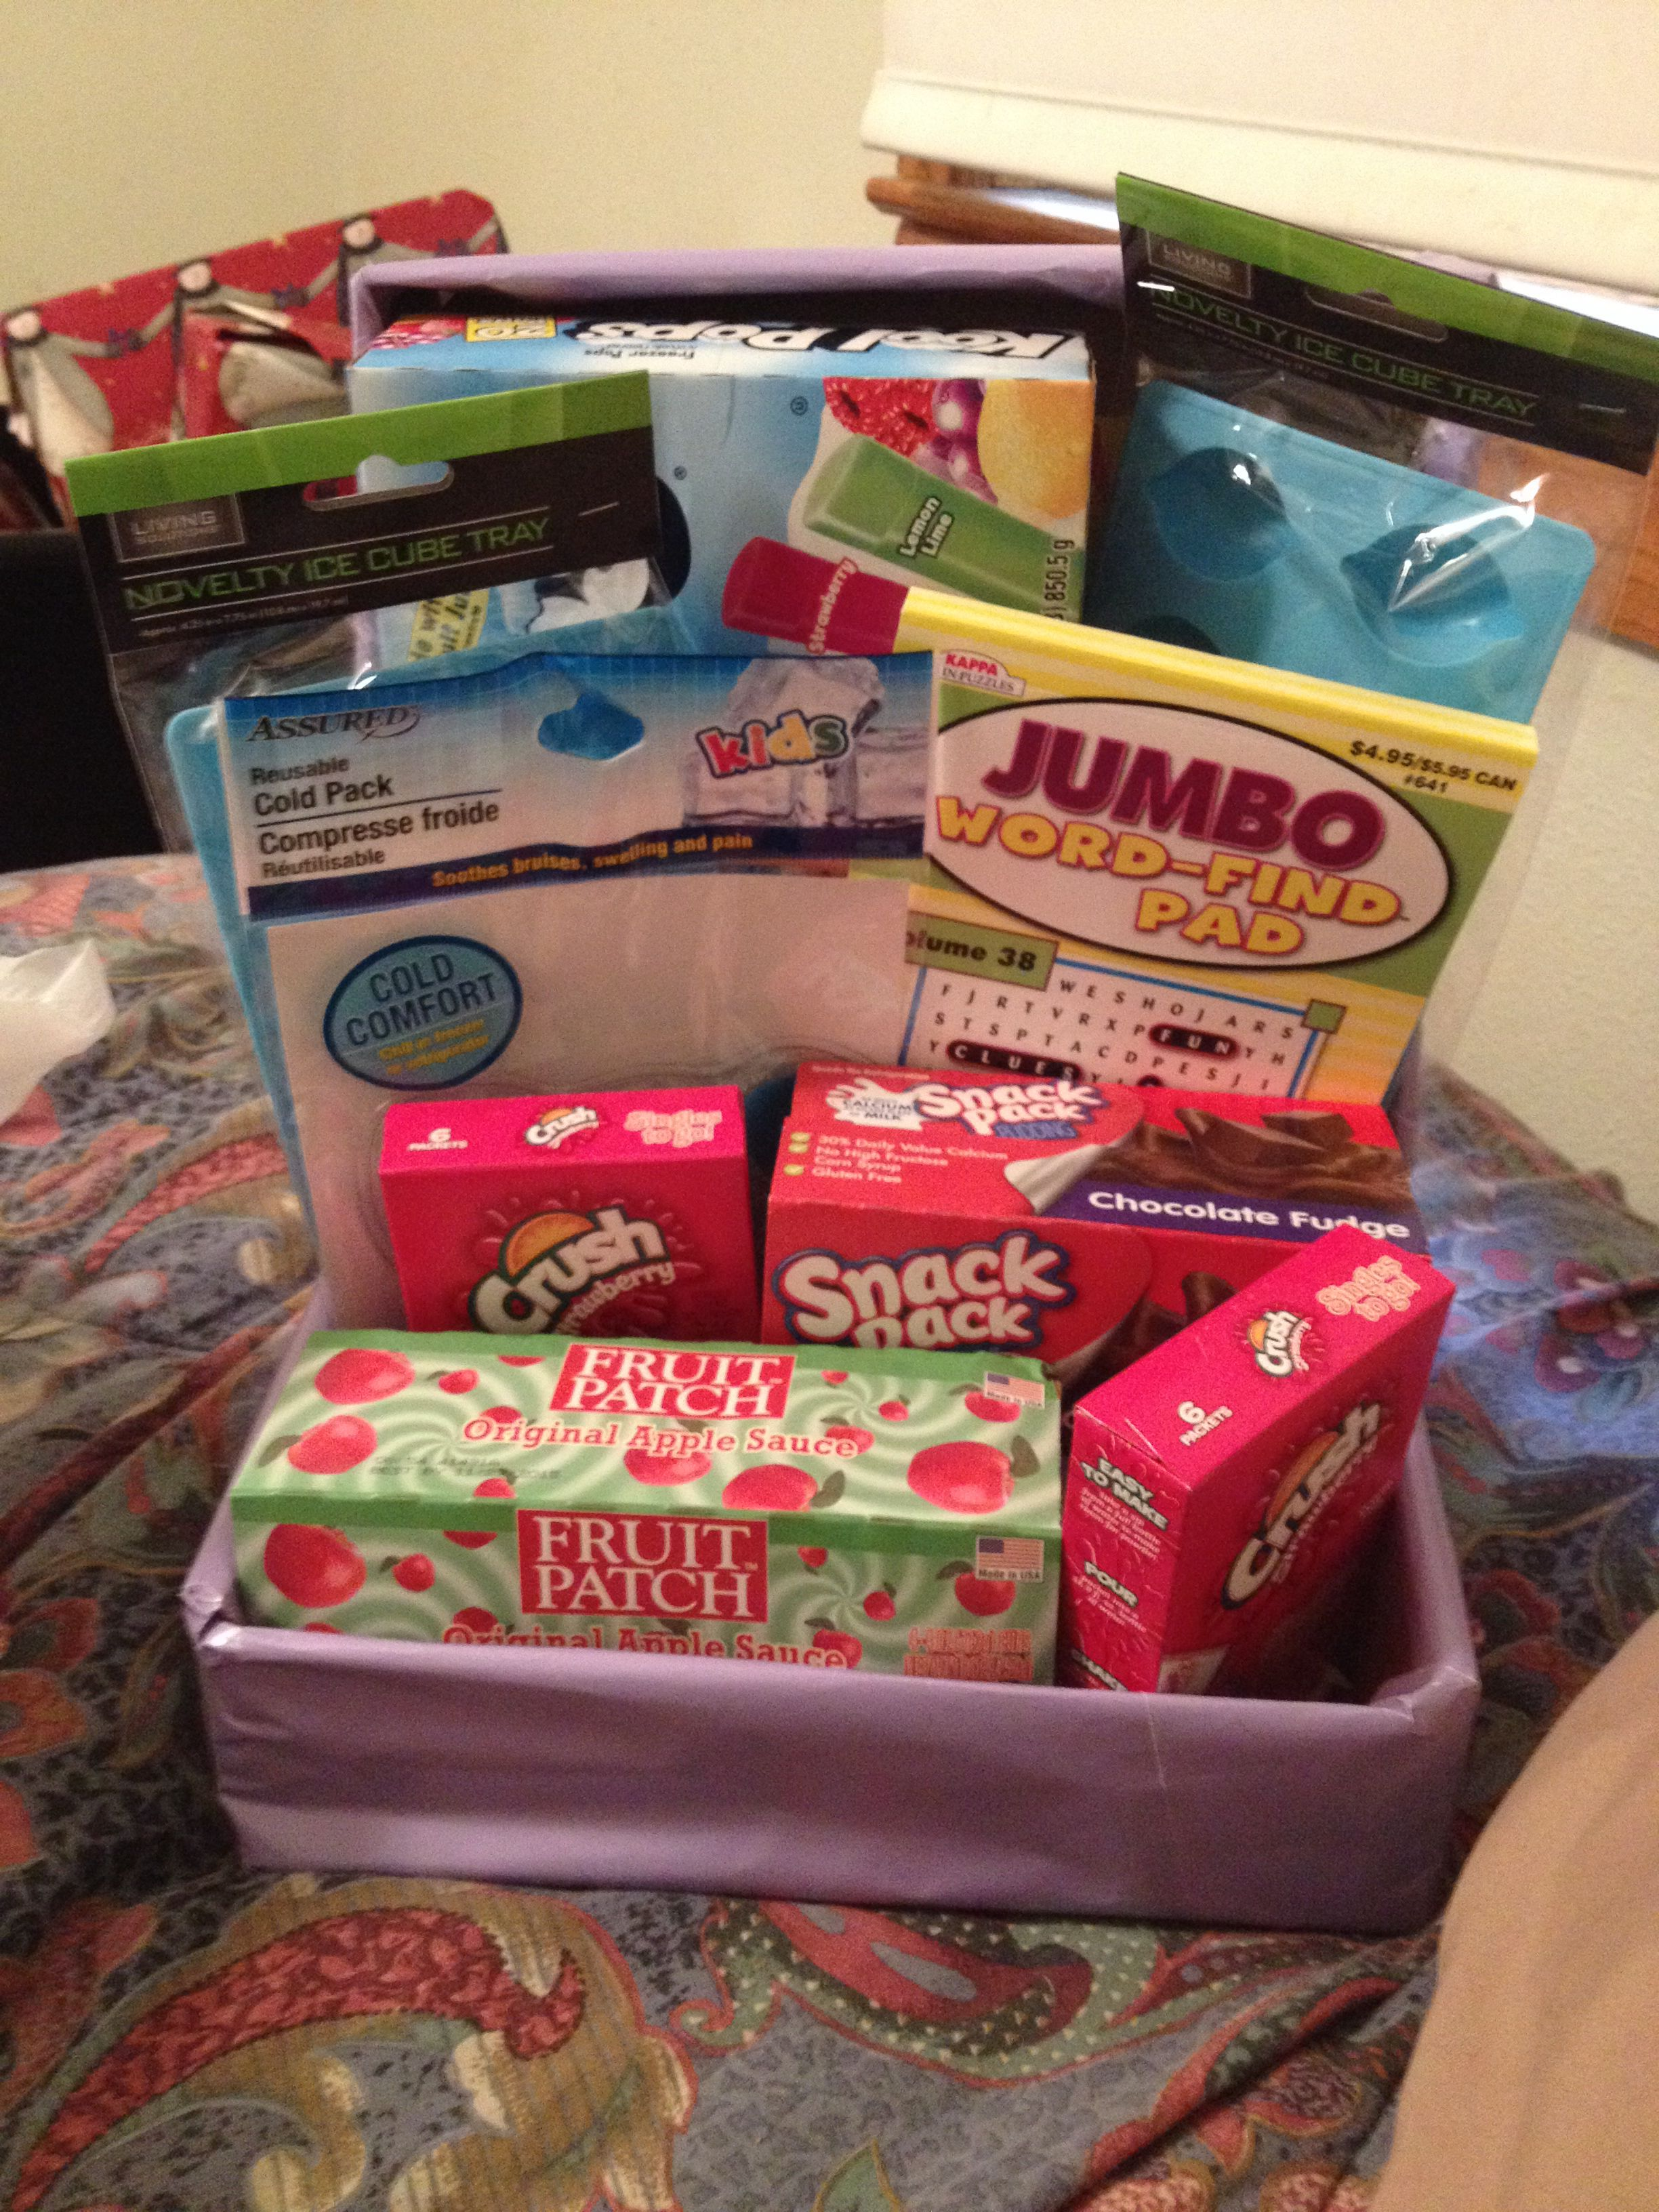 Tonsil Surgery Care Package Included Applesauce Chocolate Pudding Popsicles An Icepack Word Search Kids Gift Baskets Kids Care Package Get Well Baskets